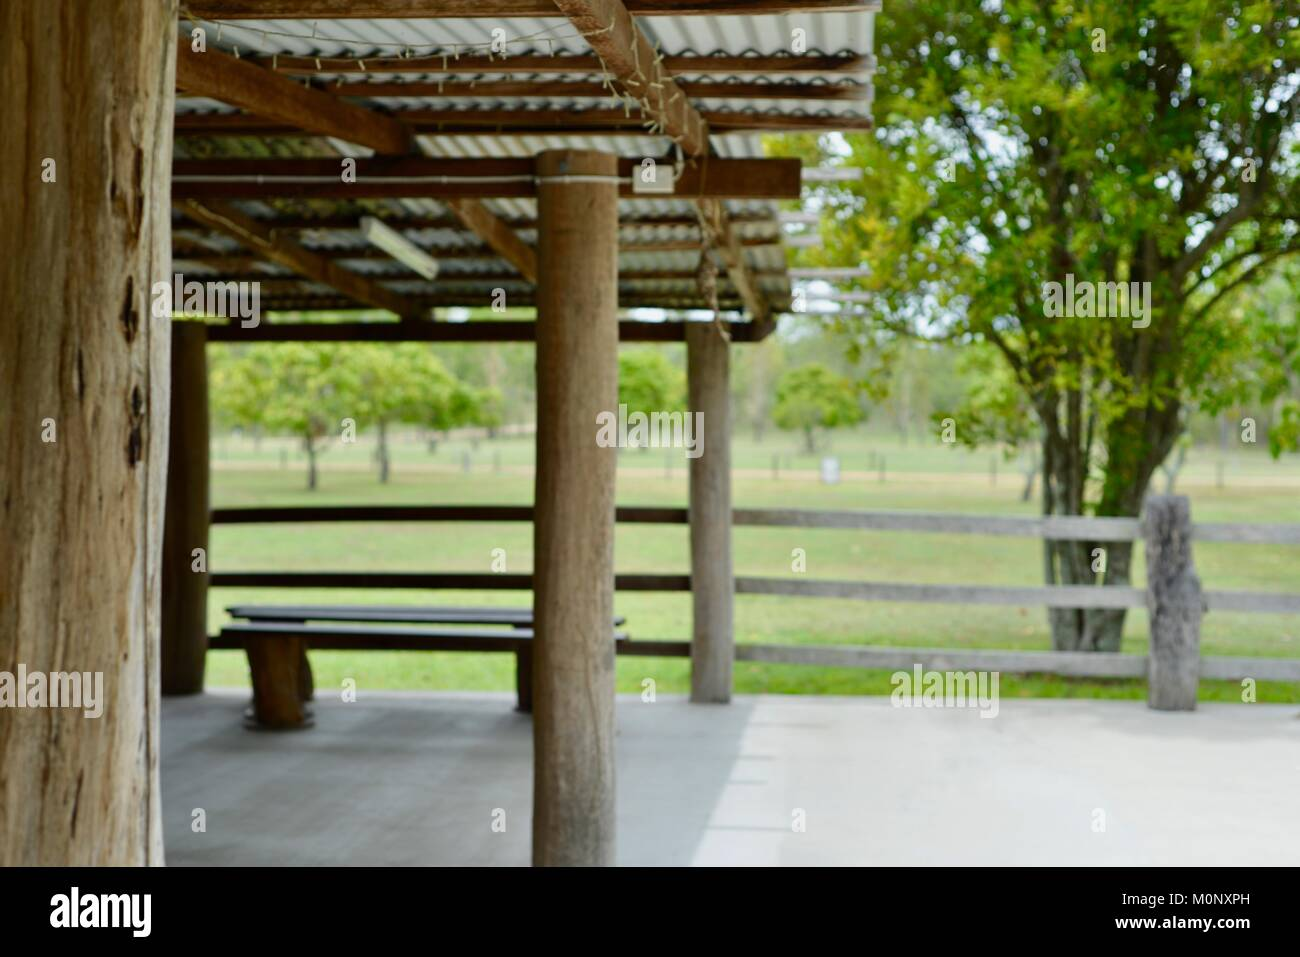 Old stables adapted into an al fresco function room, Historic buildings and scenes from Herveys Range Heritage Tea - Stock Image